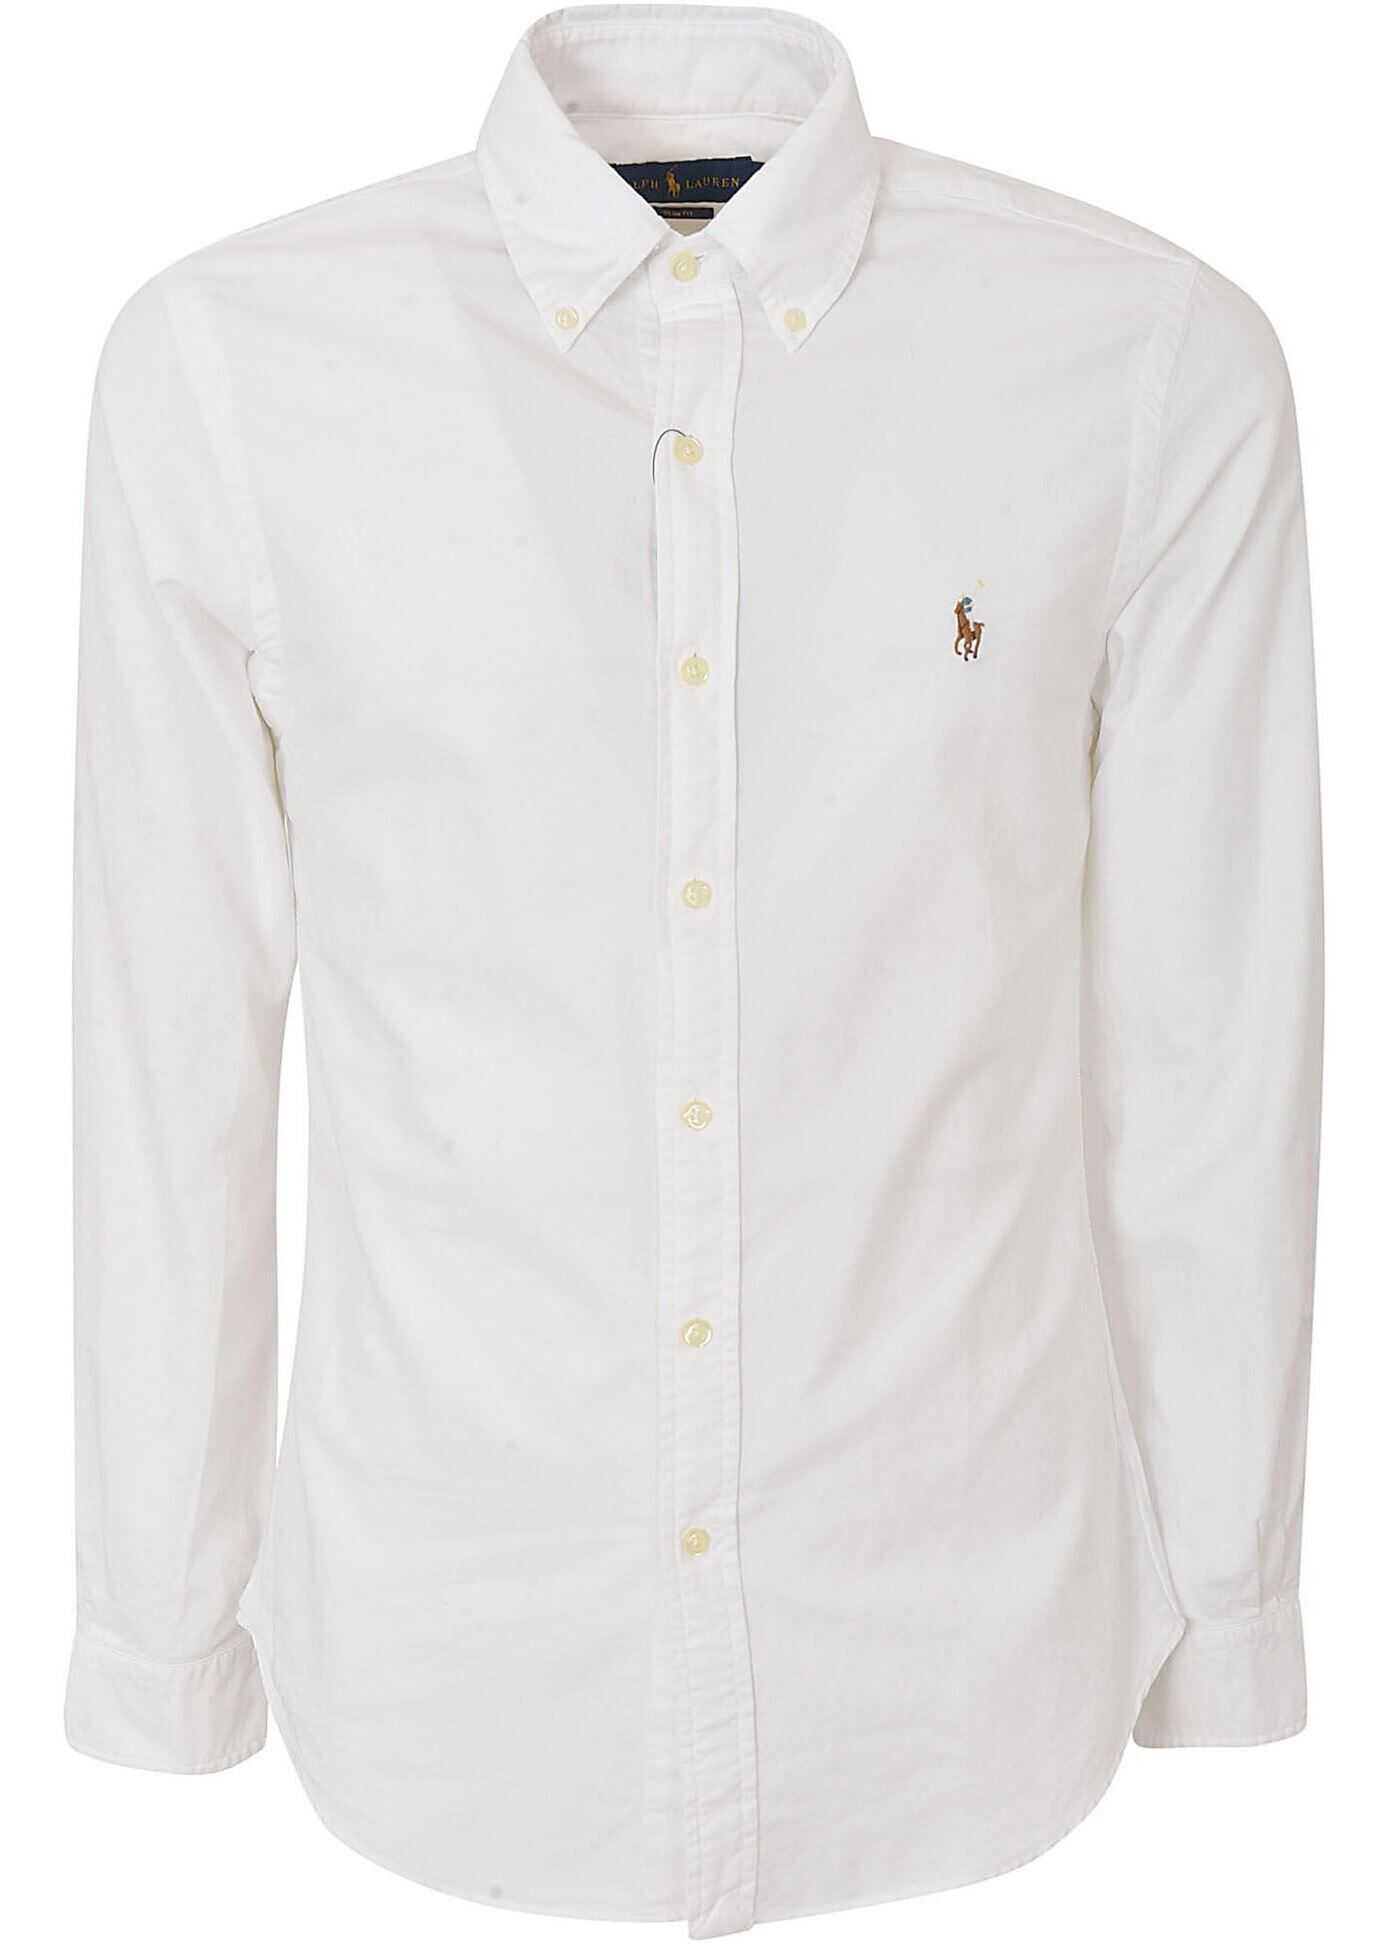 White Shirt With Logo Embroidery On The Chest thumbnail